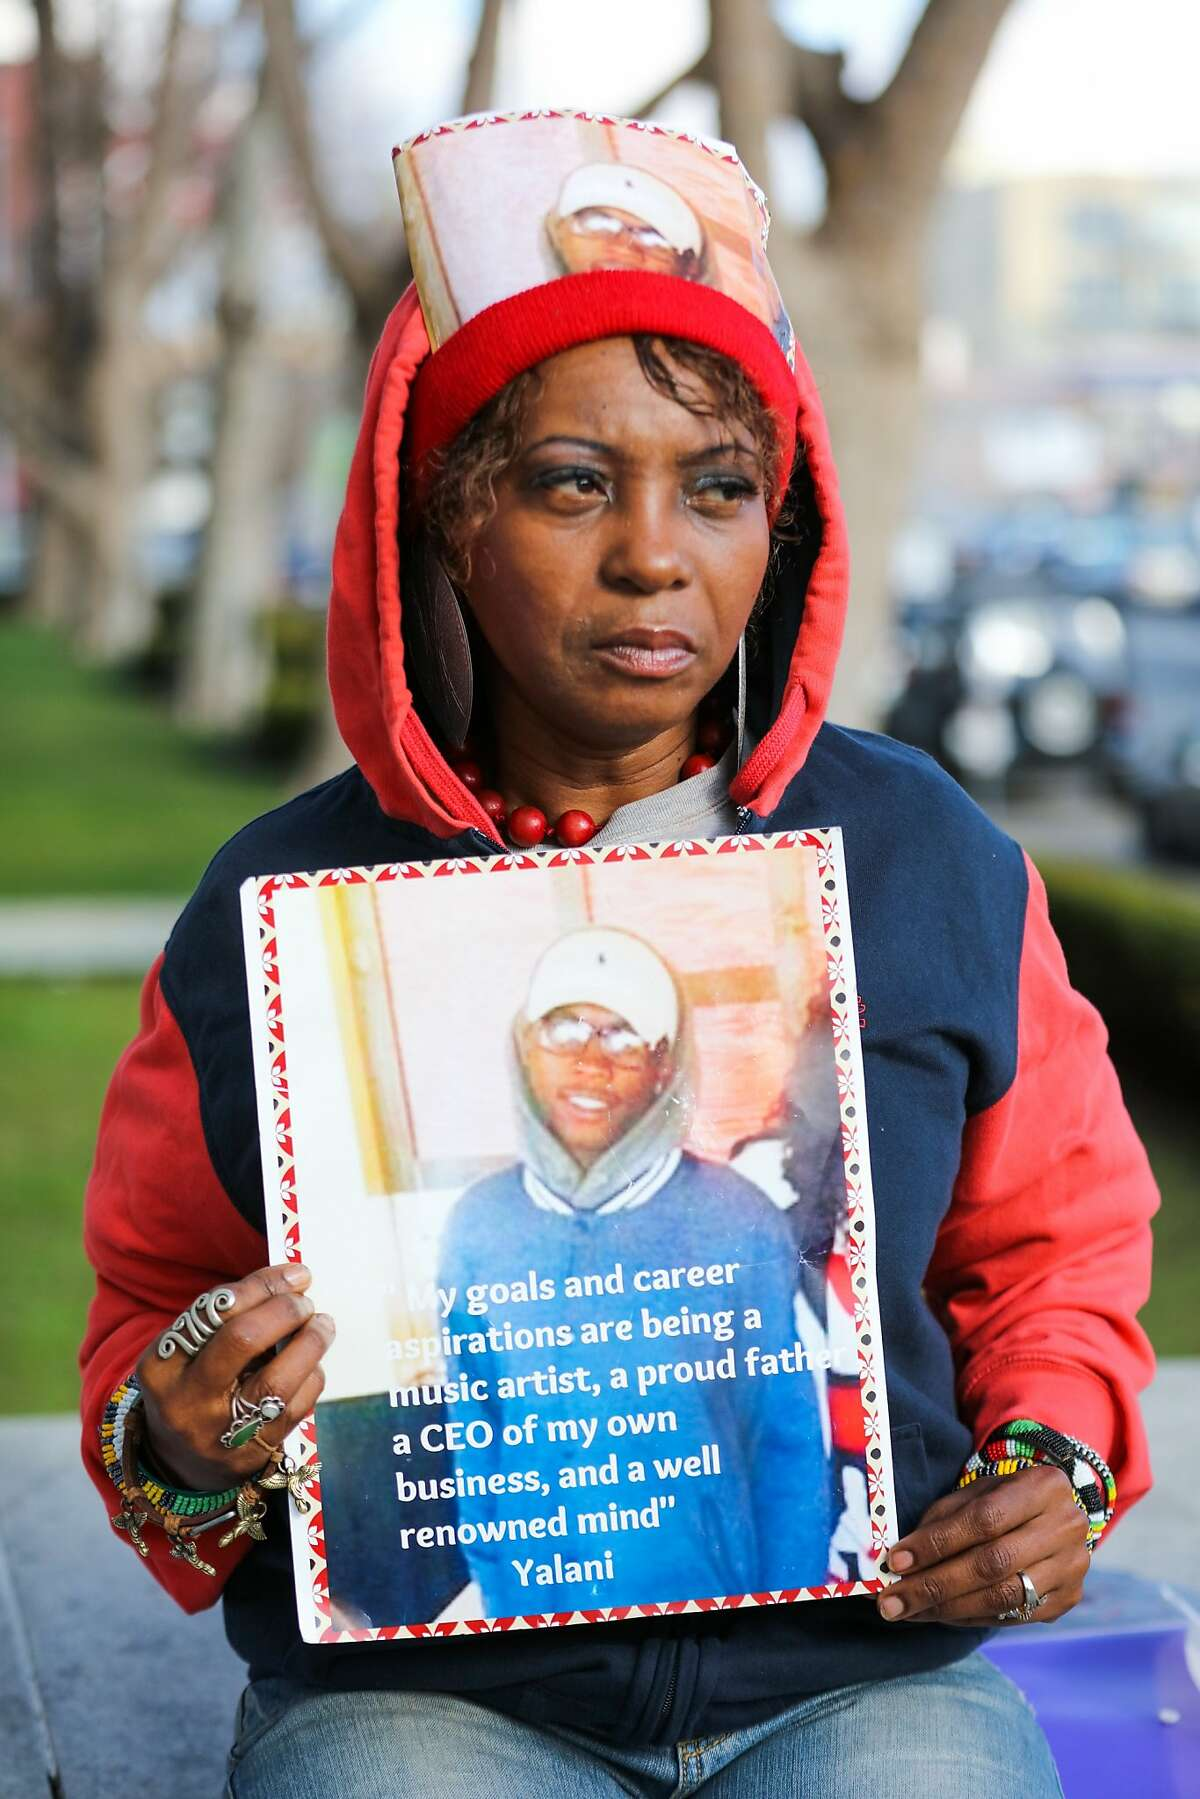 Salahaquekyah Chandler, the mother of Yalani Chinyamurindi, 19, who was killed in a quadruple homicide last year, holds an image of her son, in San Francisco, California on Thursday, January 7, 2016.